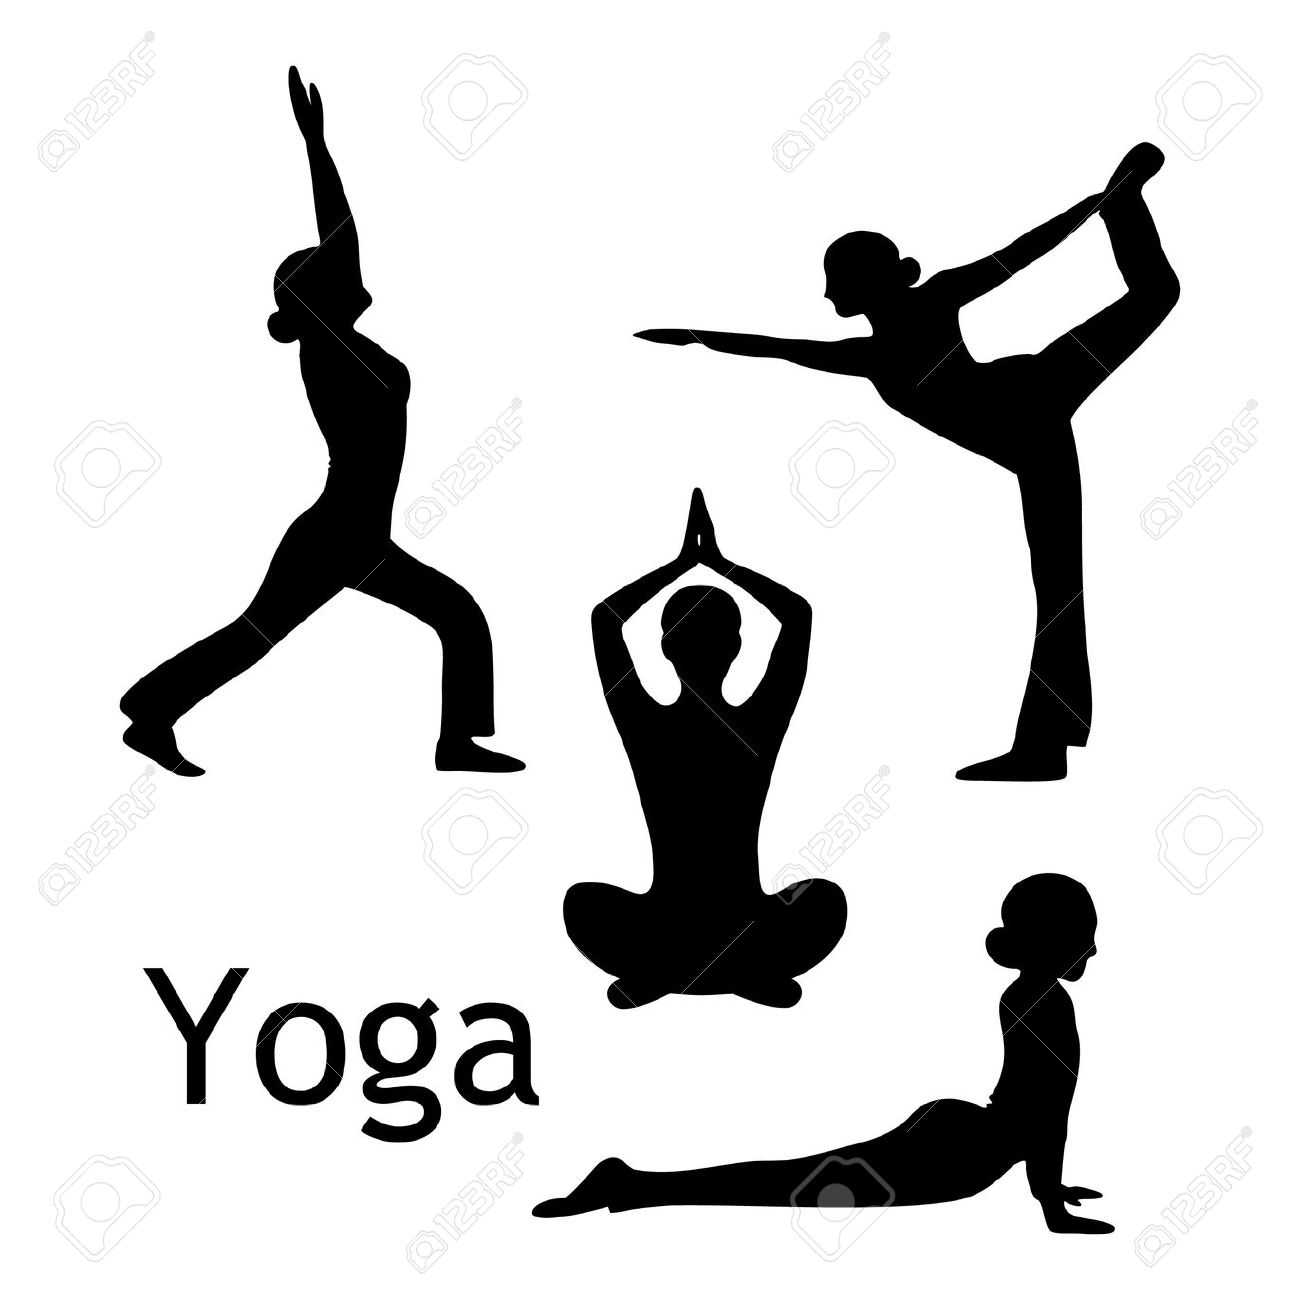 Yoga clipart. Pose